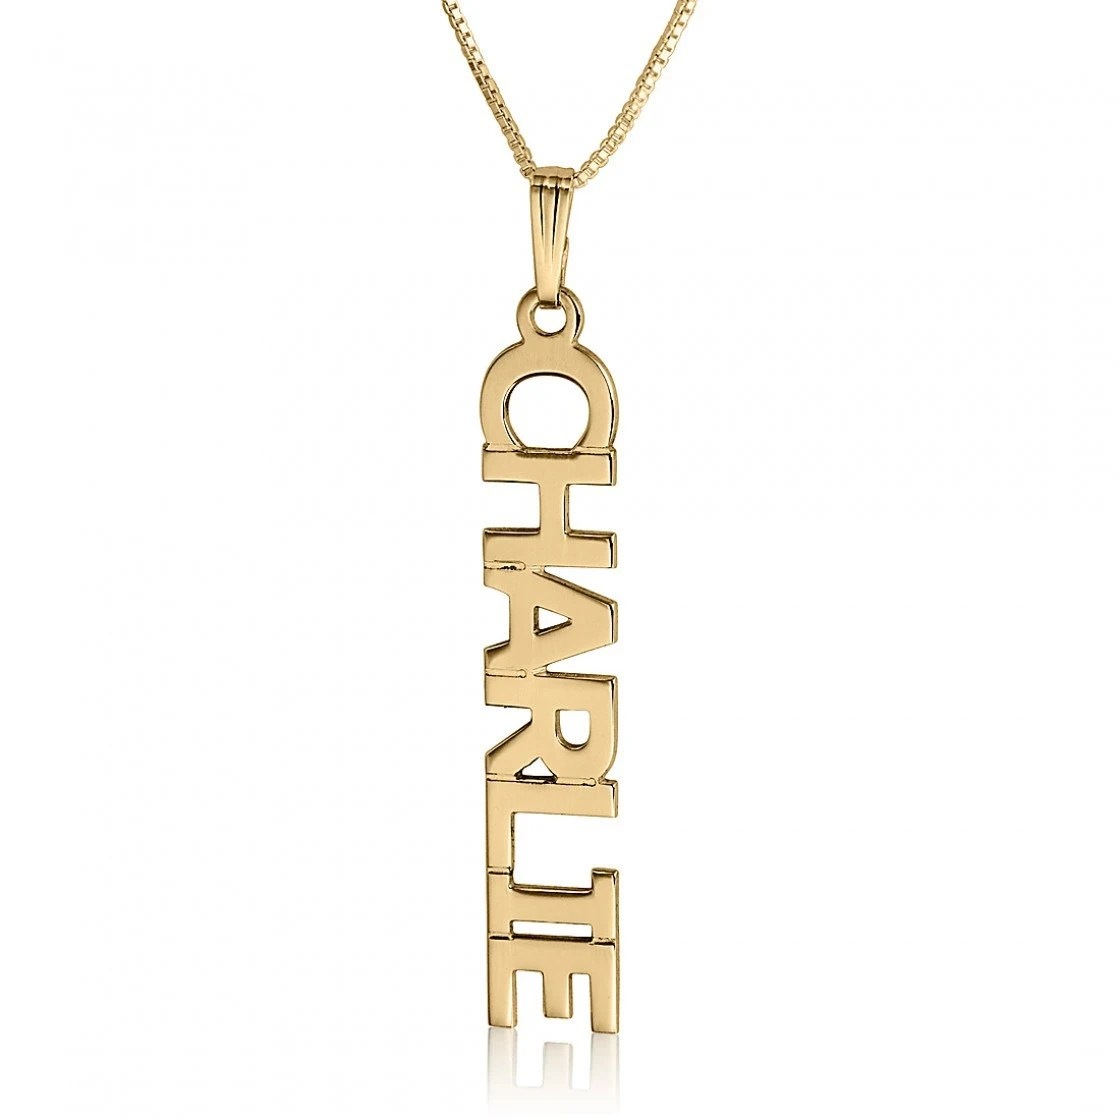 Vertical Name Necklace Gold Plated Name Pendant Necklace Name